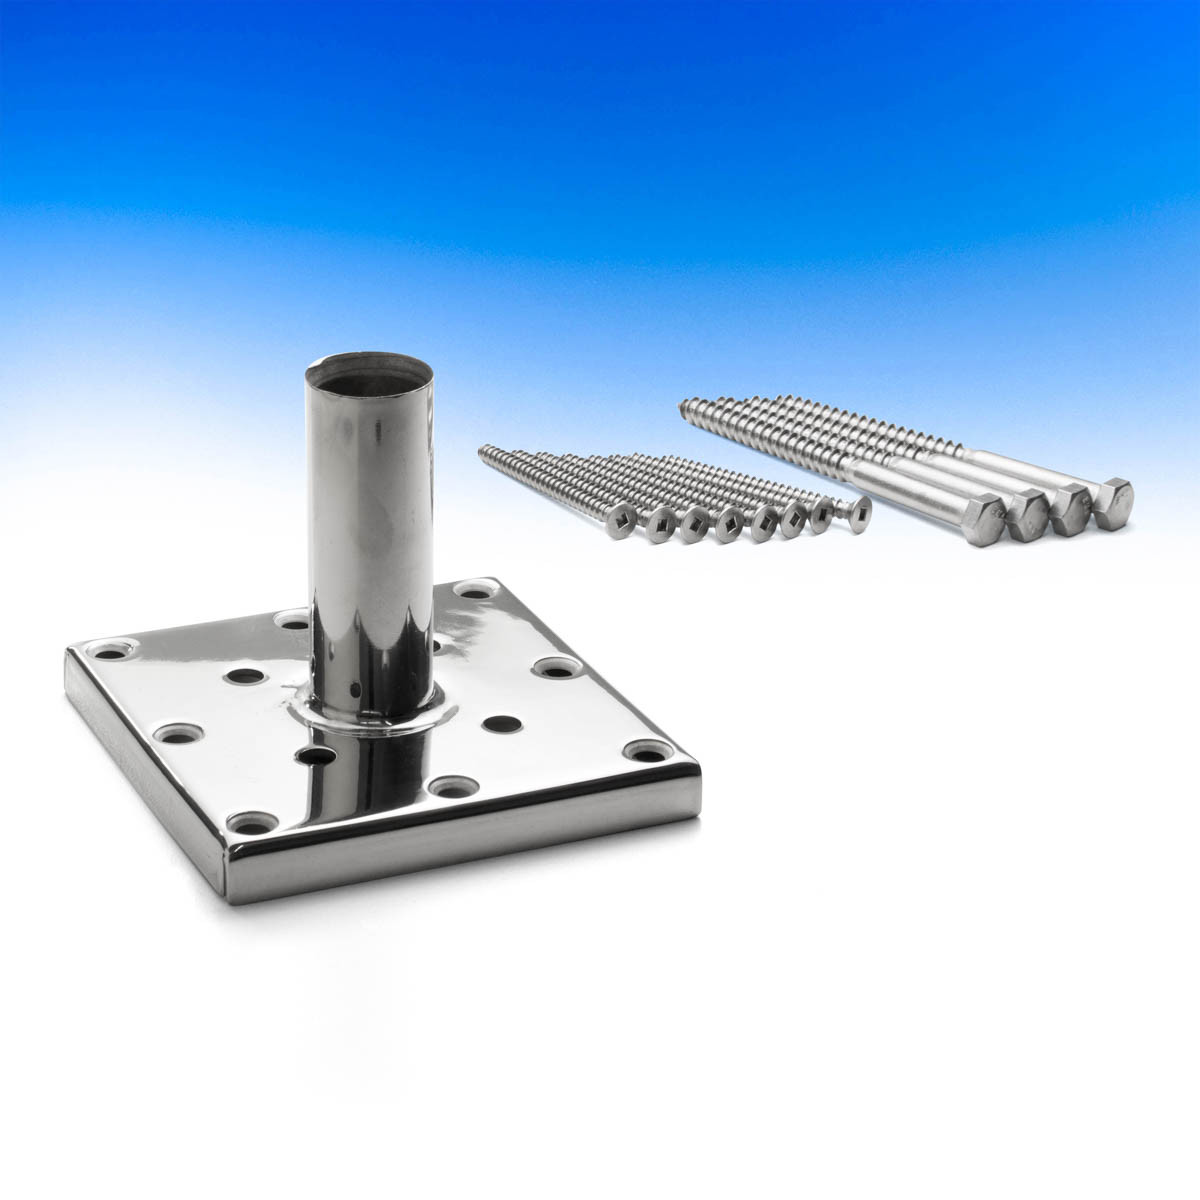 Stainless Steel Titan Post Anchor - 4 x 4 inch - Package Contents